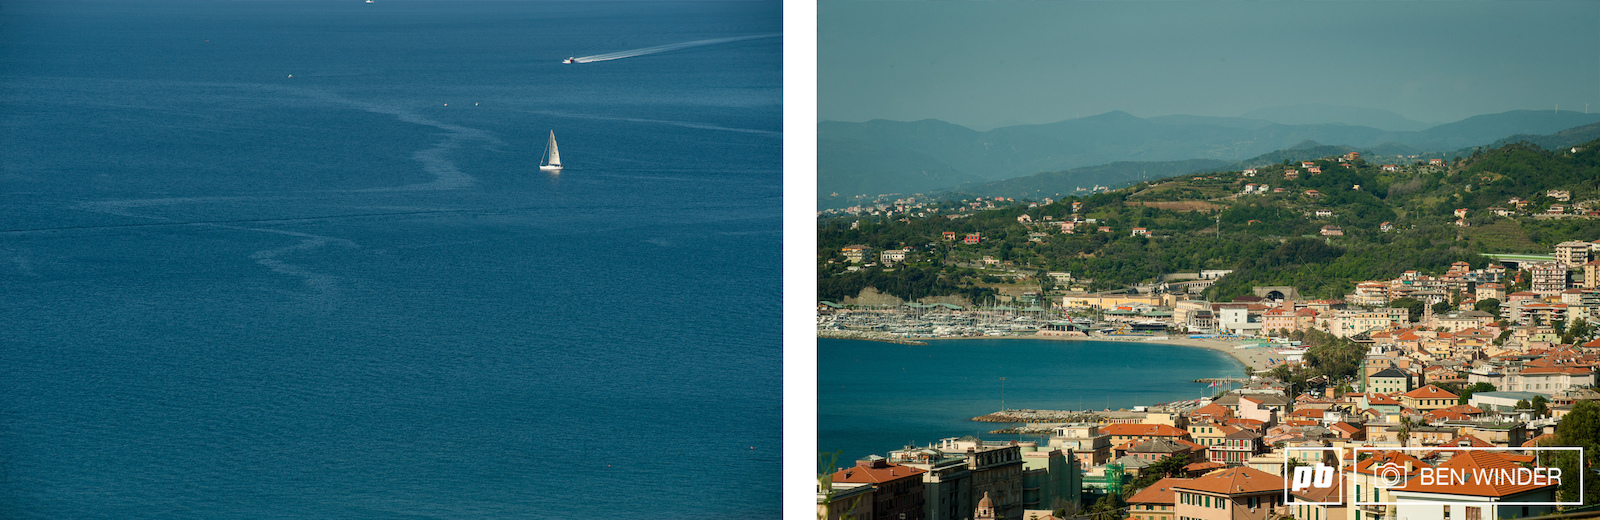 Varazze is pretty stunning clear blue waters and hills that grow rapidly as the eye moves away from the sea.